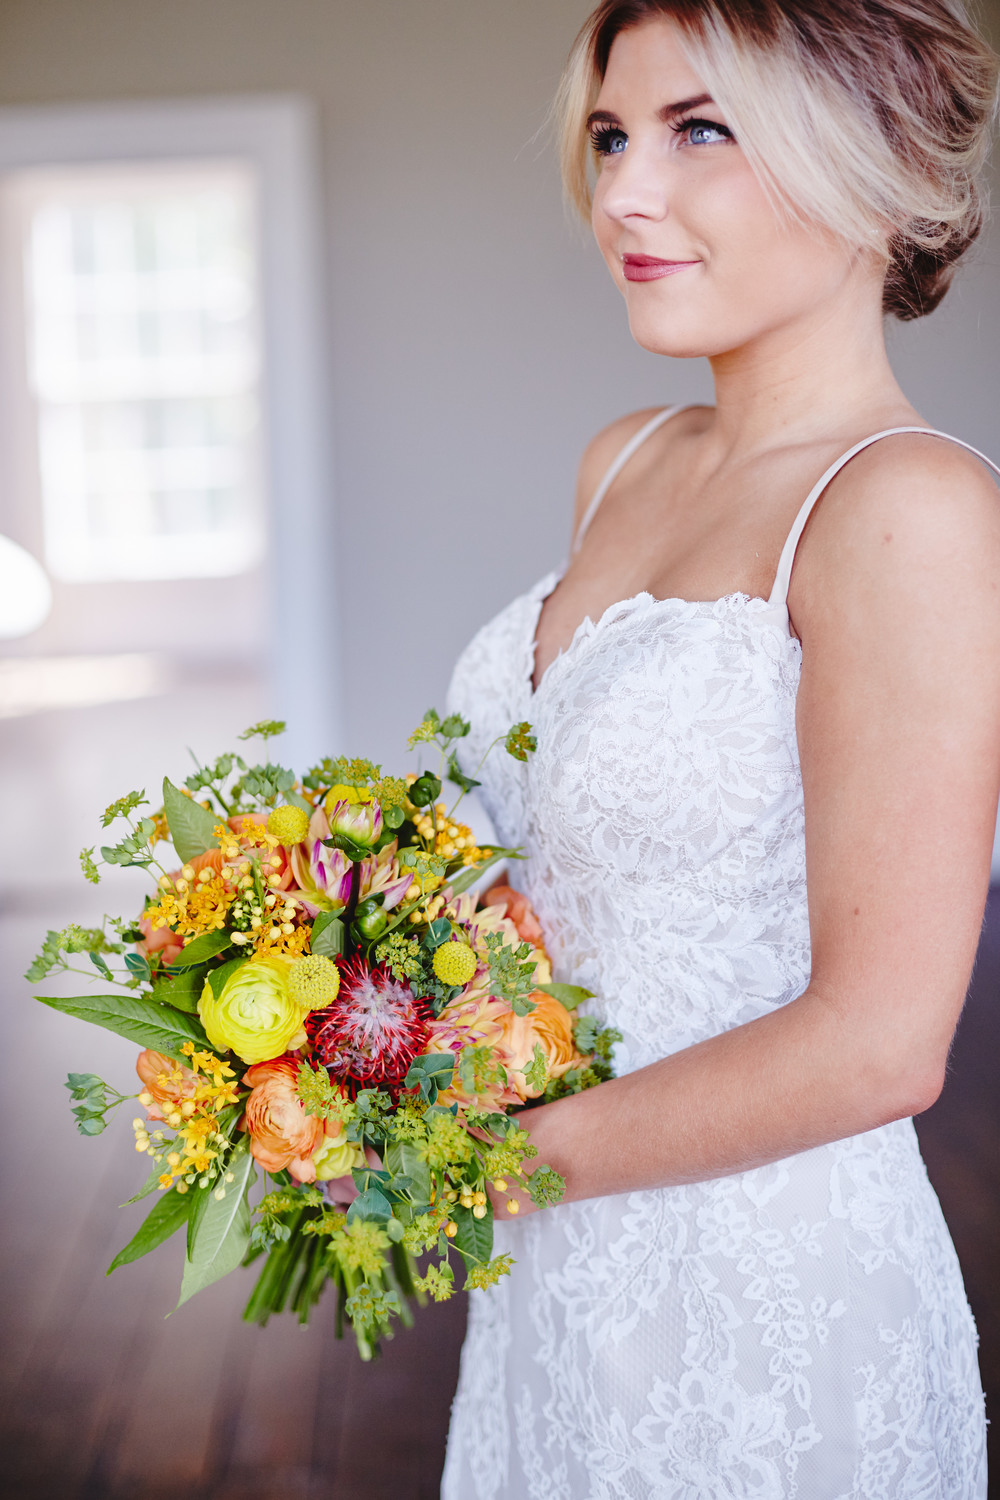 Styled_Session_Becca_Bridal_Portraits_Sarah_Tau_Photography_HOB_Studio_285 105.jpg